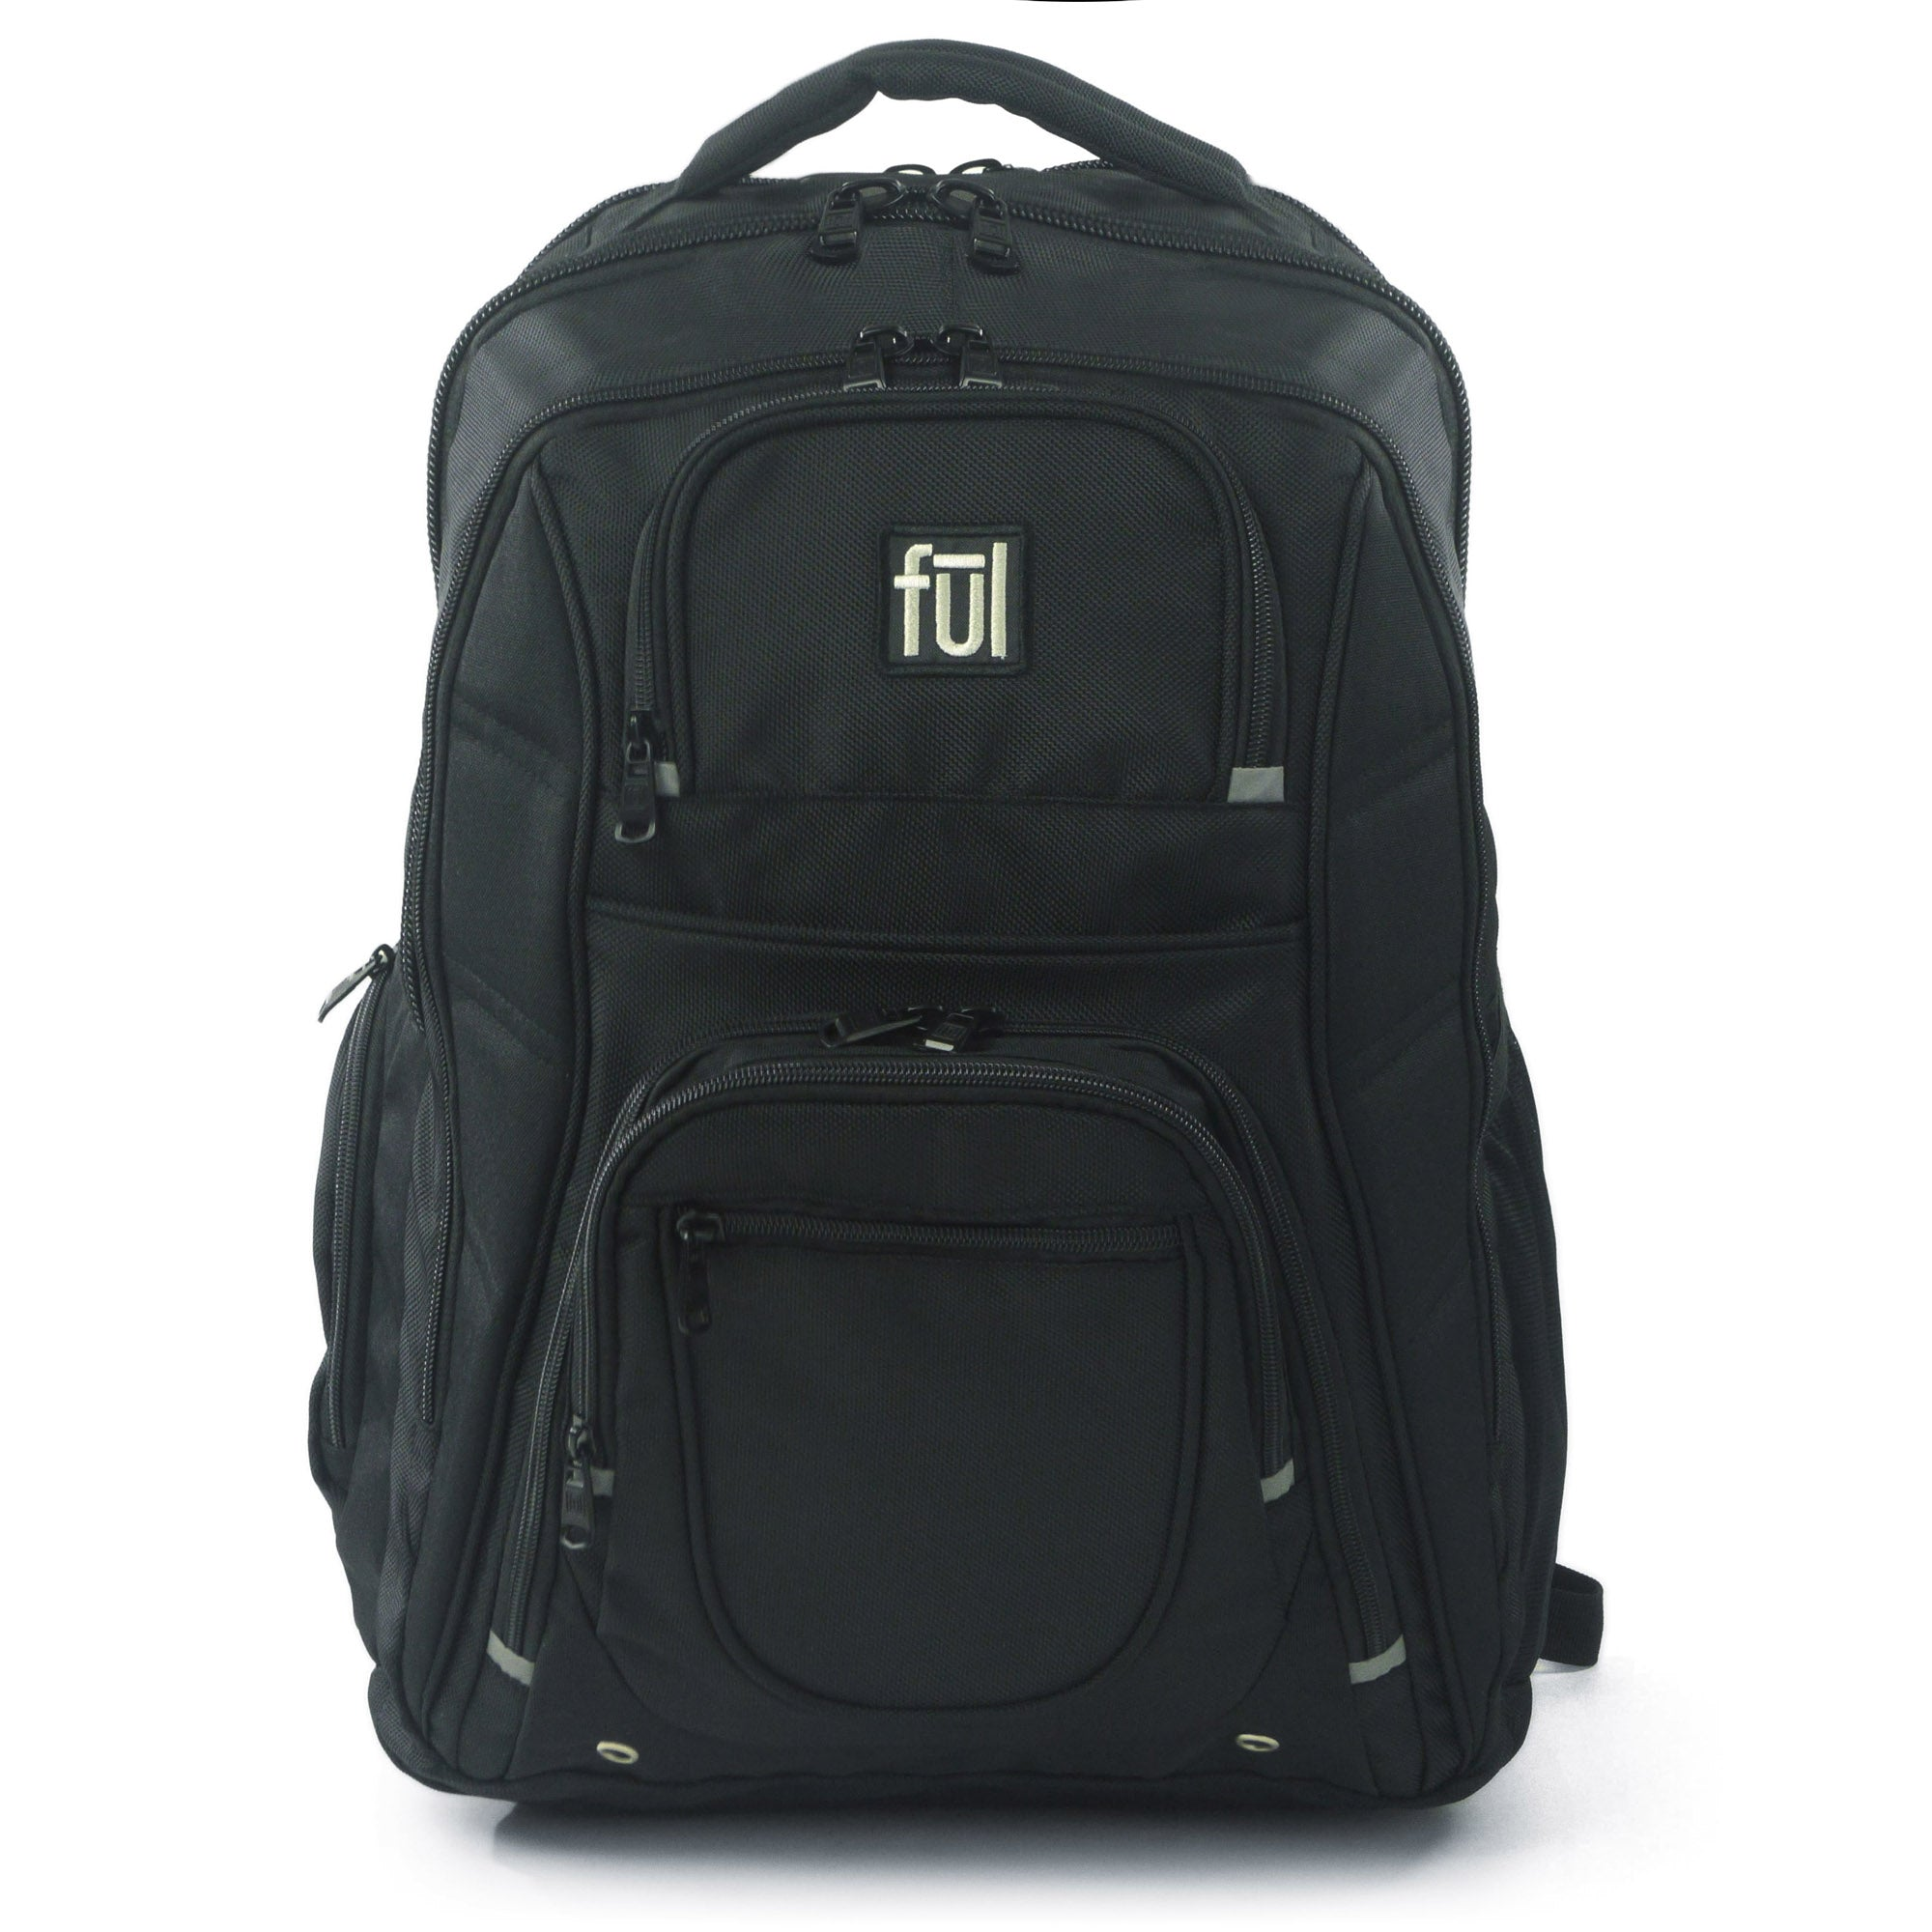 "Rockwood 19"" TSA friendly FŪL Tech Backpack-Ful Luggage-Christmas-Sale!-50%-Off-with-code-HolidayFul50"